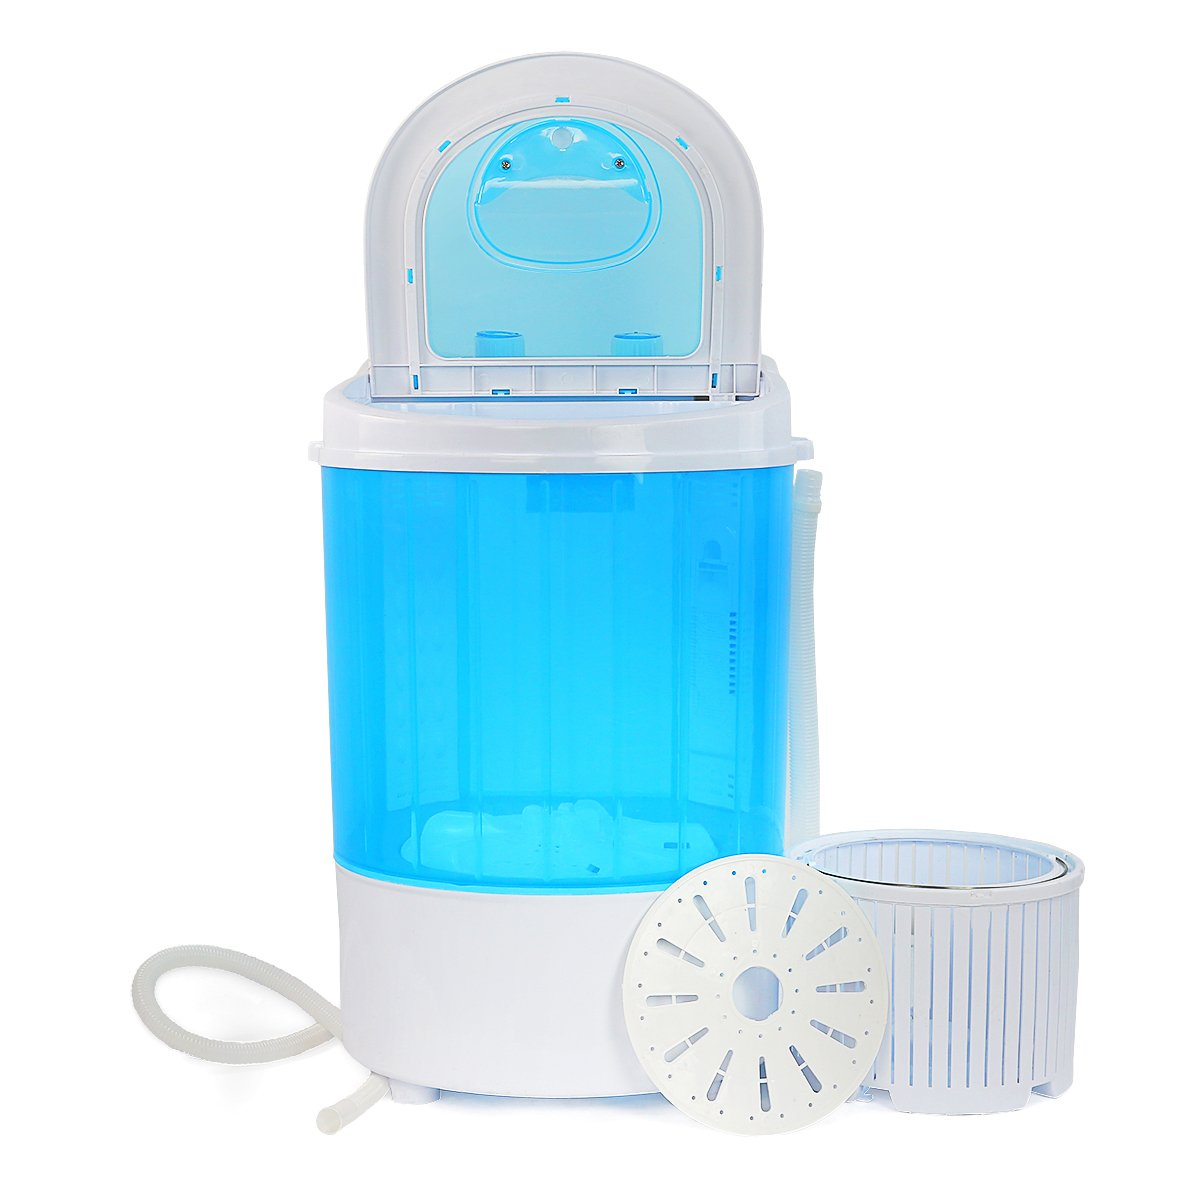 Portable Washing Machine with Spin Dry Basket 6.6lbs Capacity Mini Washer